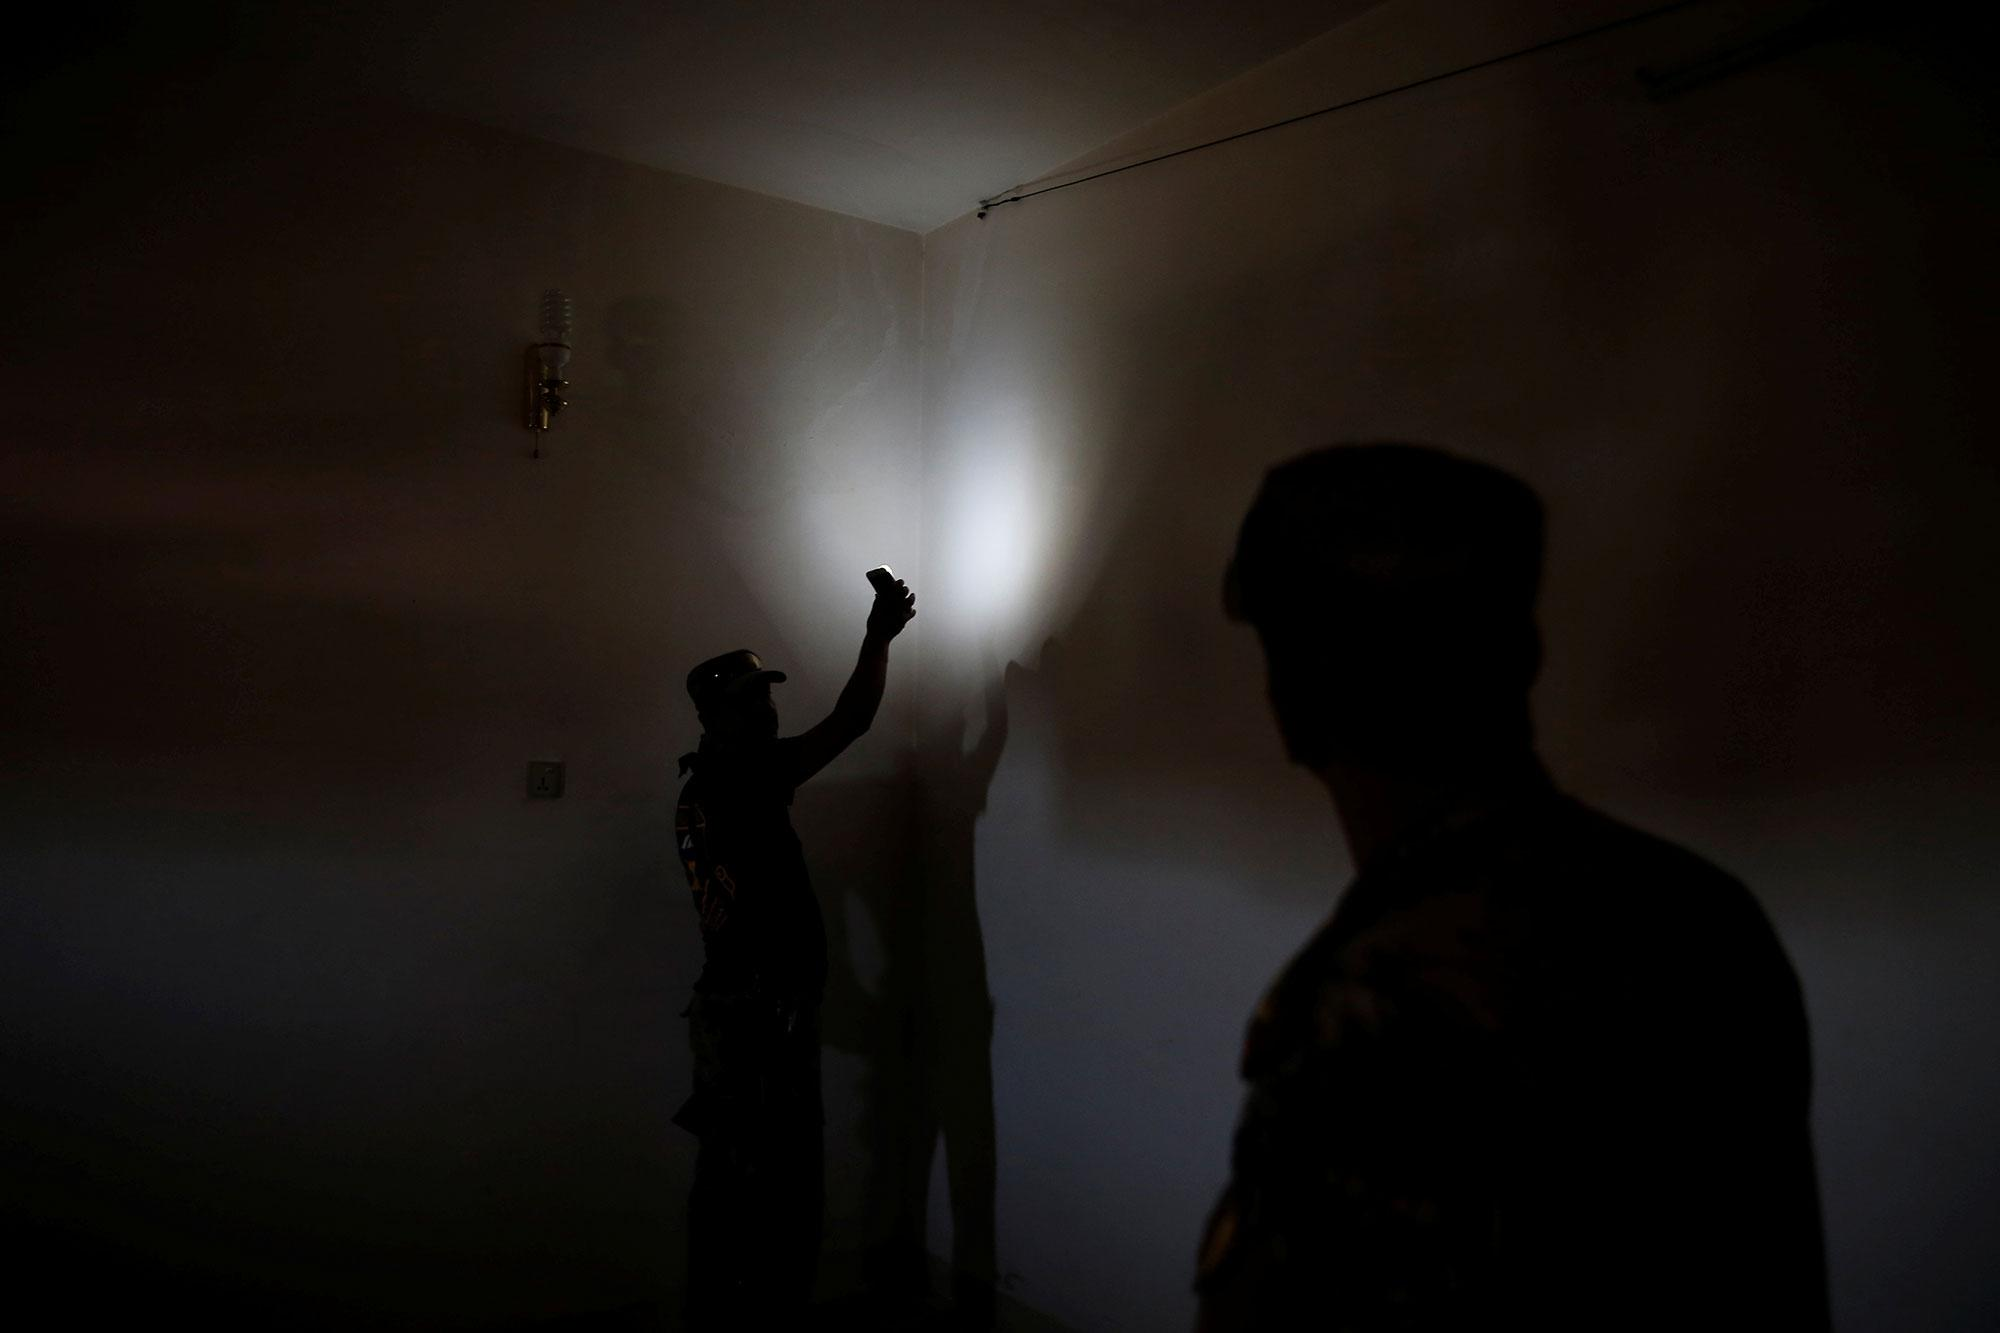 <p>Members of the Iraqi Army's 9th Armoured Division inspect the cables of the surveillance system inside a compound used as a prison by Islamic State militants in the 17 Tamuz (July 17) district, in western Mosul, Iraq, June 6, 2017. (Alkis Konstantinidis/Reuters) </p>